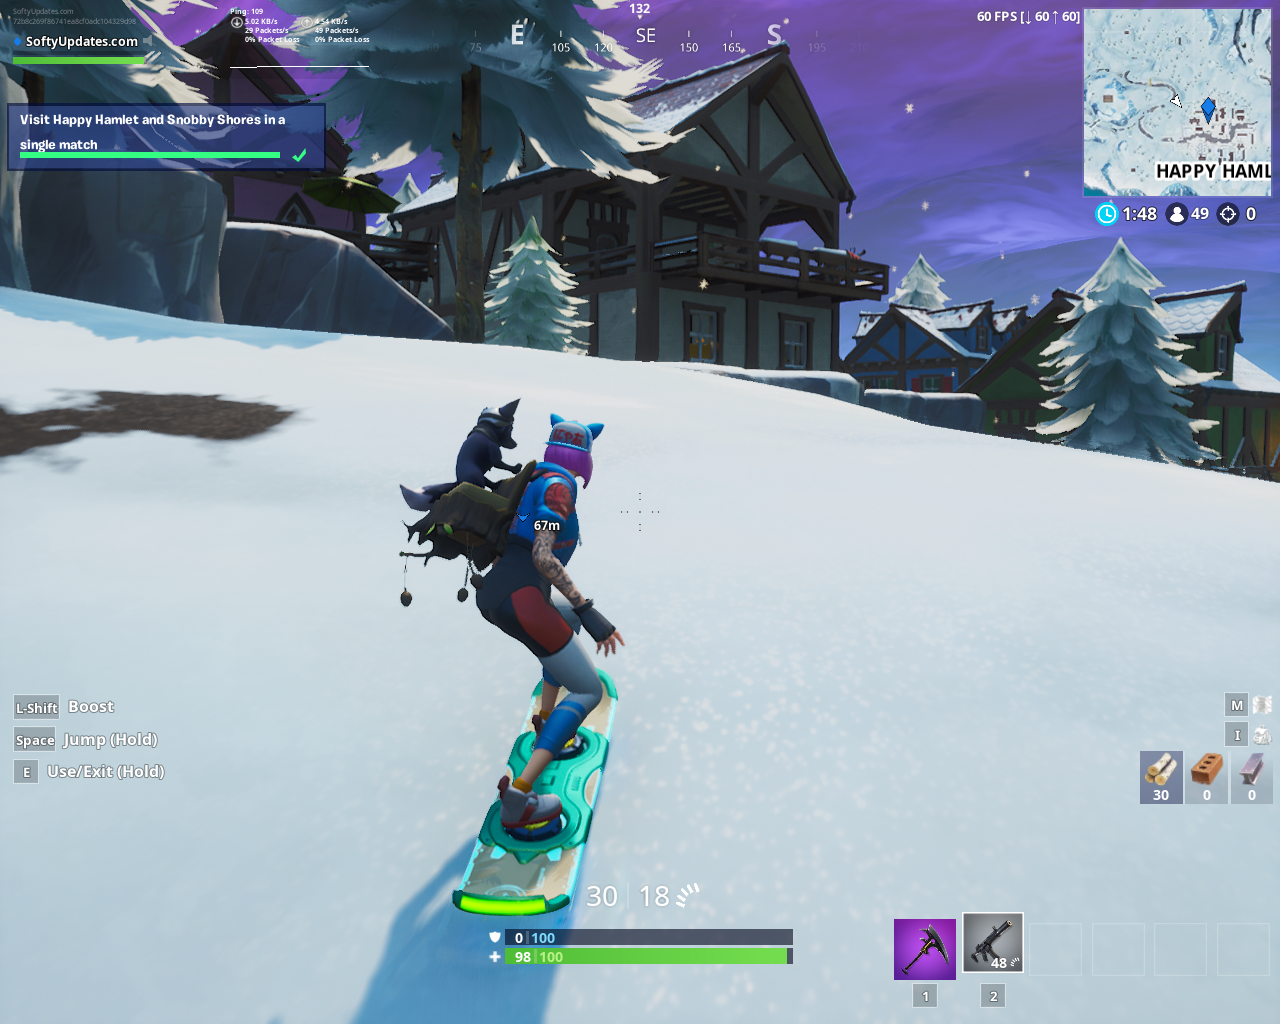 Visit Happy Hamlet and Snobby Shores in a single match